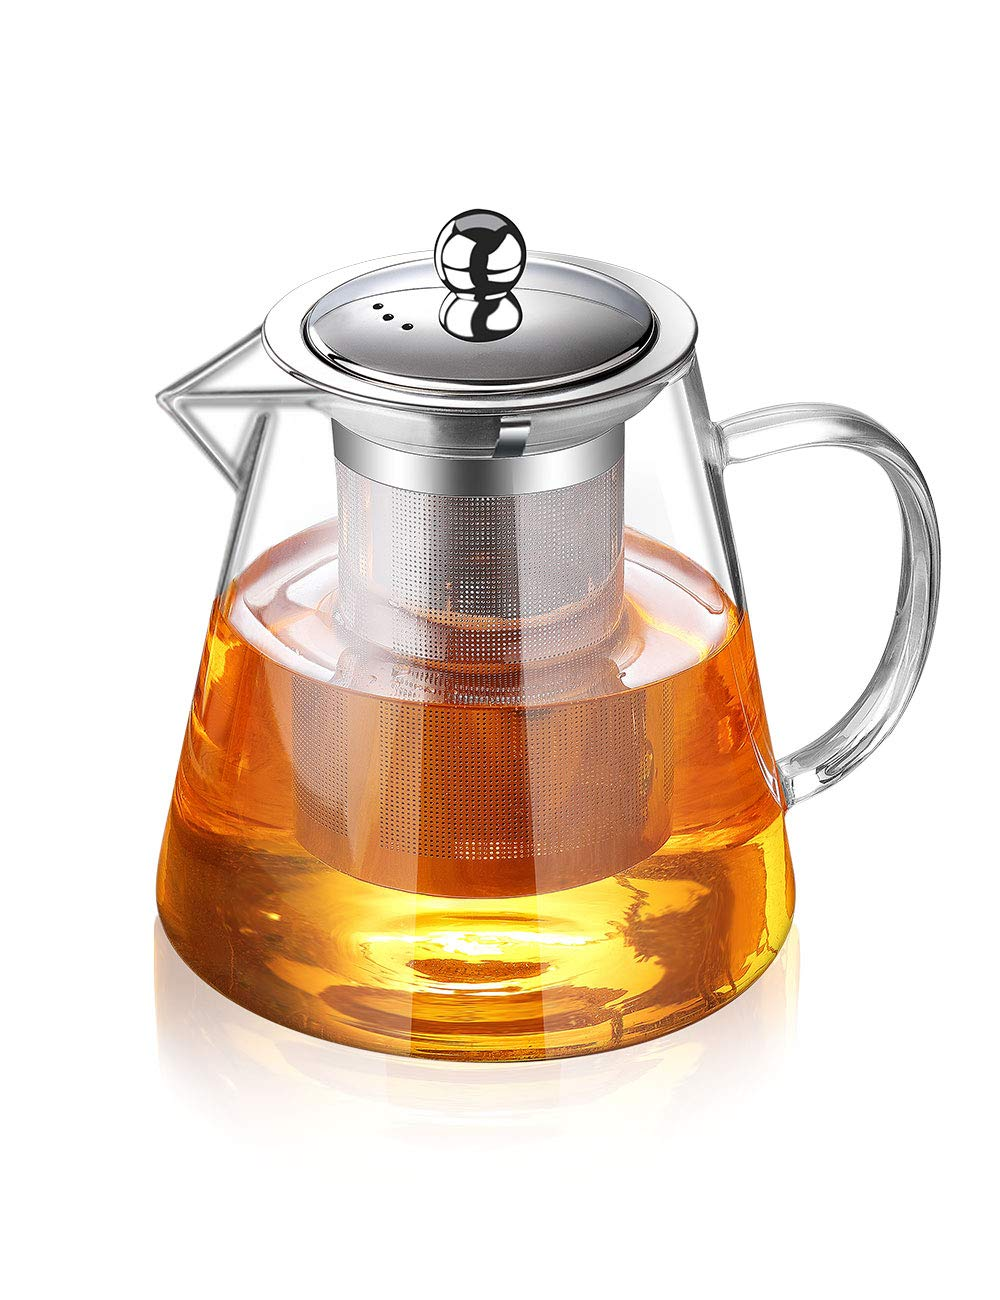 Glass Teapot with Infuser Tea Pot 950ml/32oz Tea Kettle Stovetop Safe Blooming and Loose Leaf Tea Maker Set by TMOST